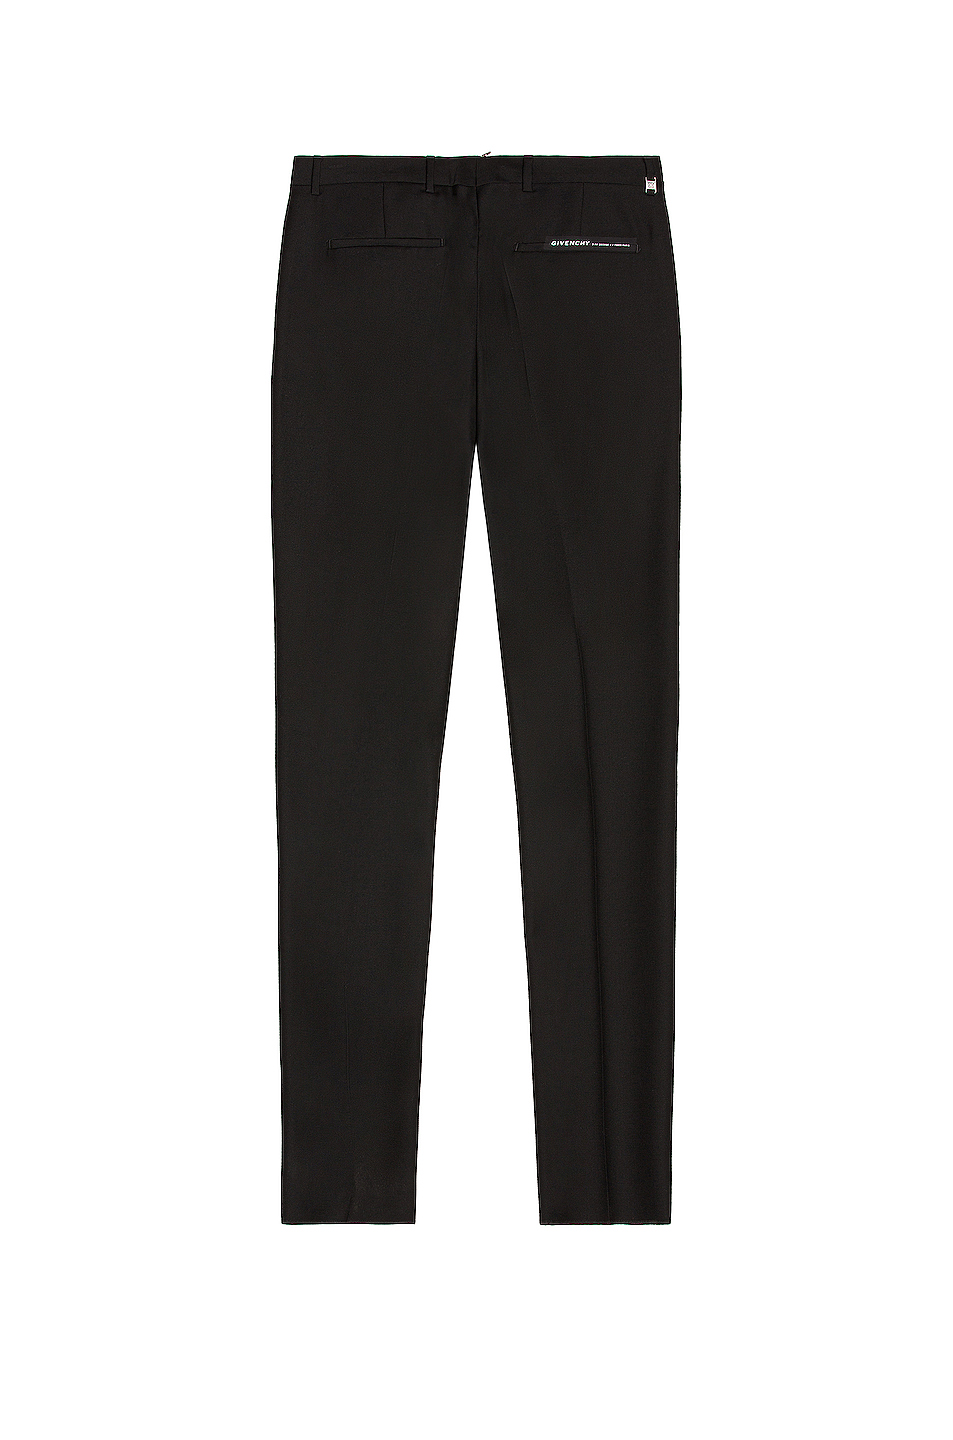 Givenchy Tape Detail Trouser